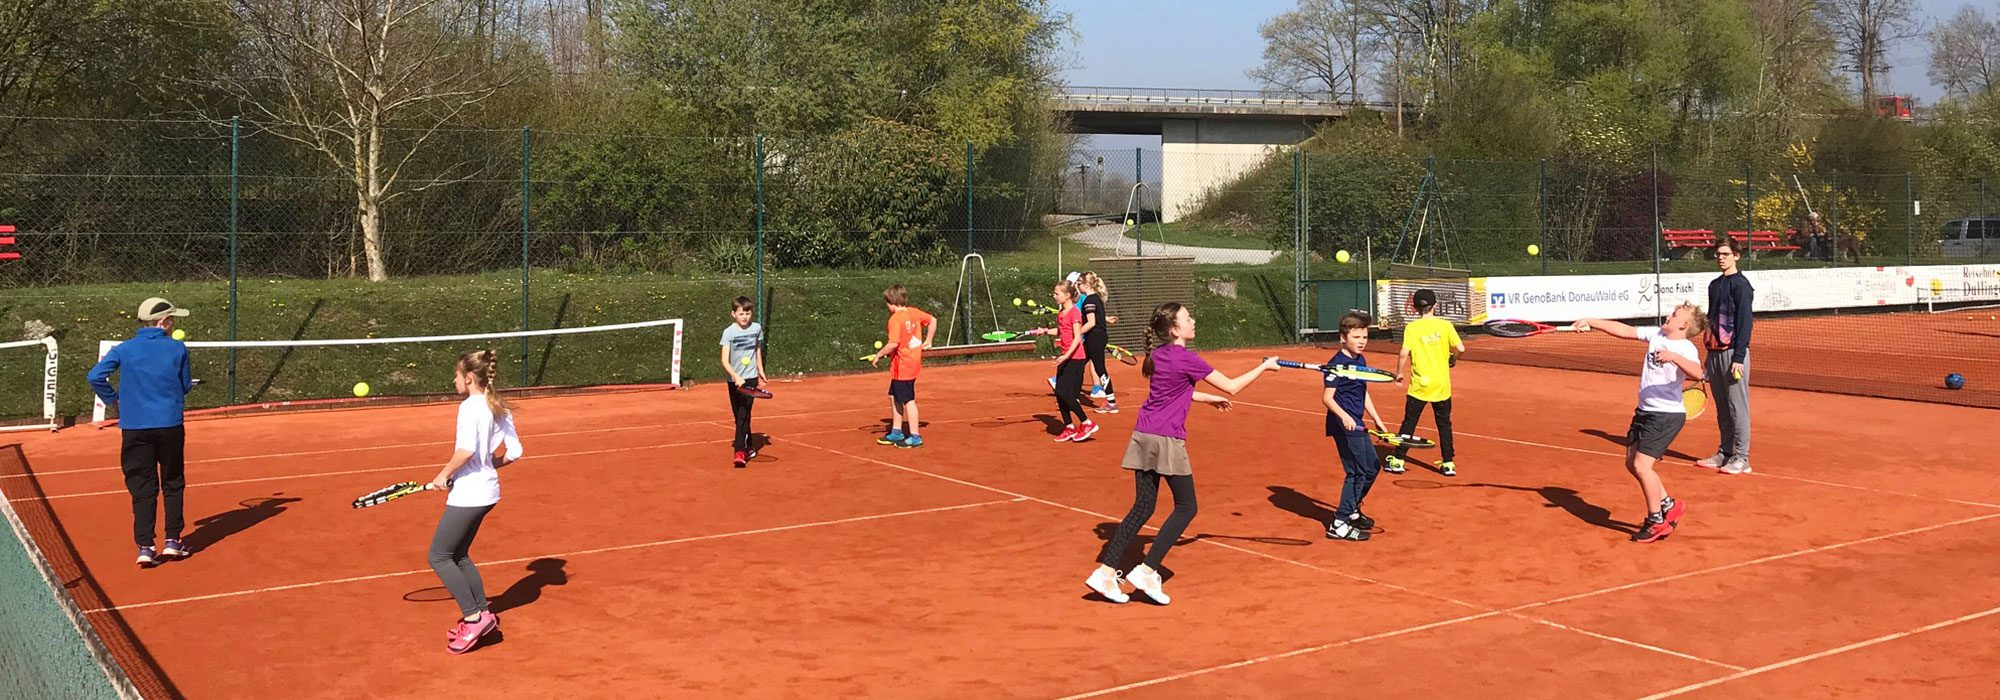 3-Tages-Kurse | Tennis in den Oster- und Pfingstferien